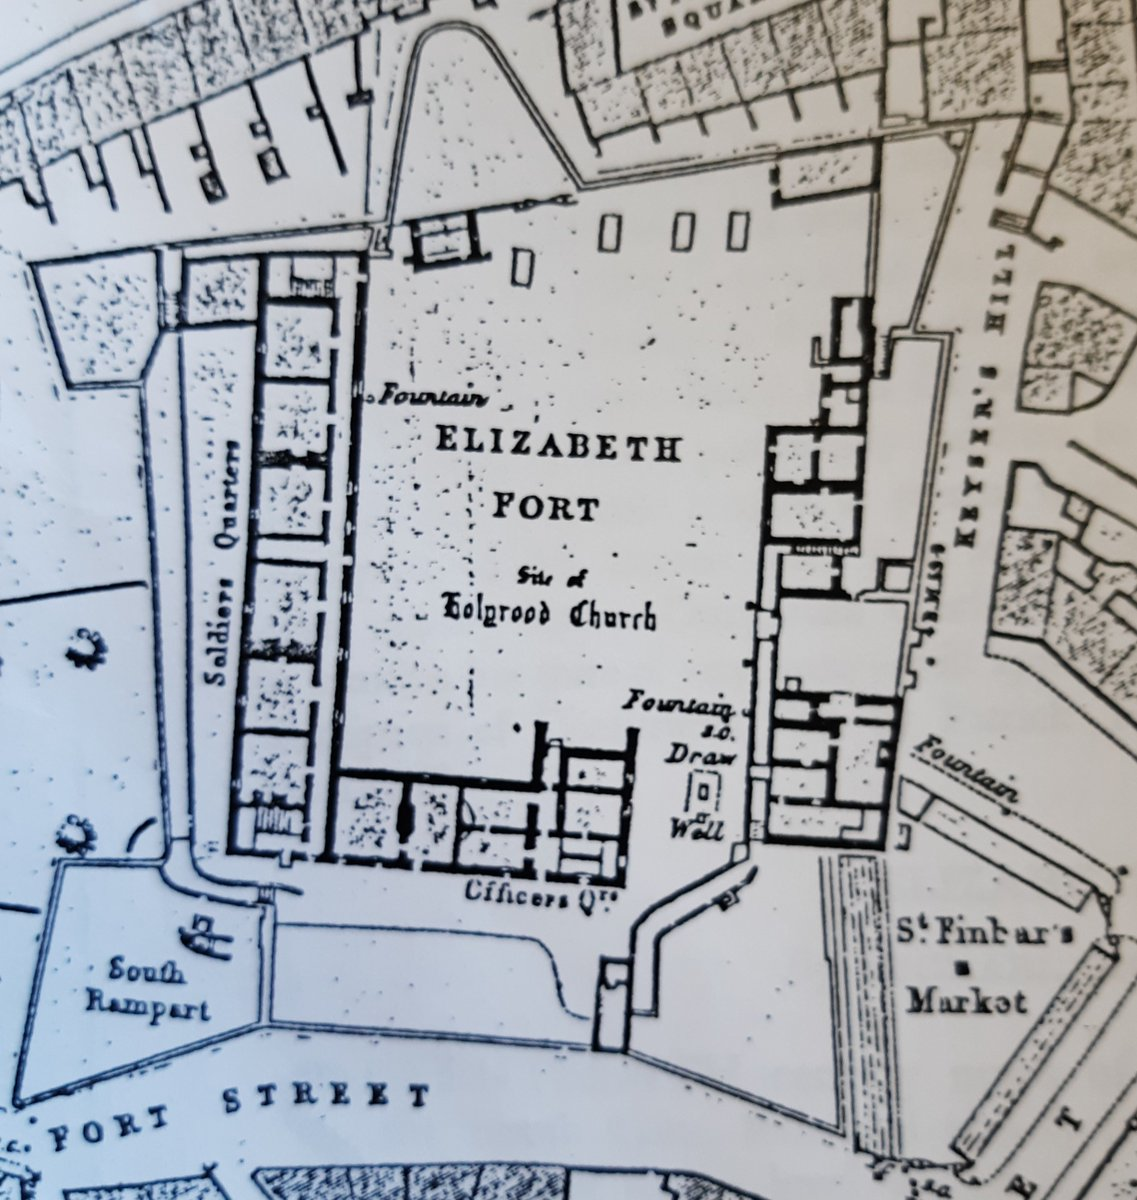 We received this fab Elizabeth Fort layout from Michael O'Donnell See how it clearly shows the locations of the Soldiers and Officers quarters.  #PureCorkWelcomes #IrelandsAncientEast #CorkCityCouncil #PureCork https://t.co/9laW8trcN0